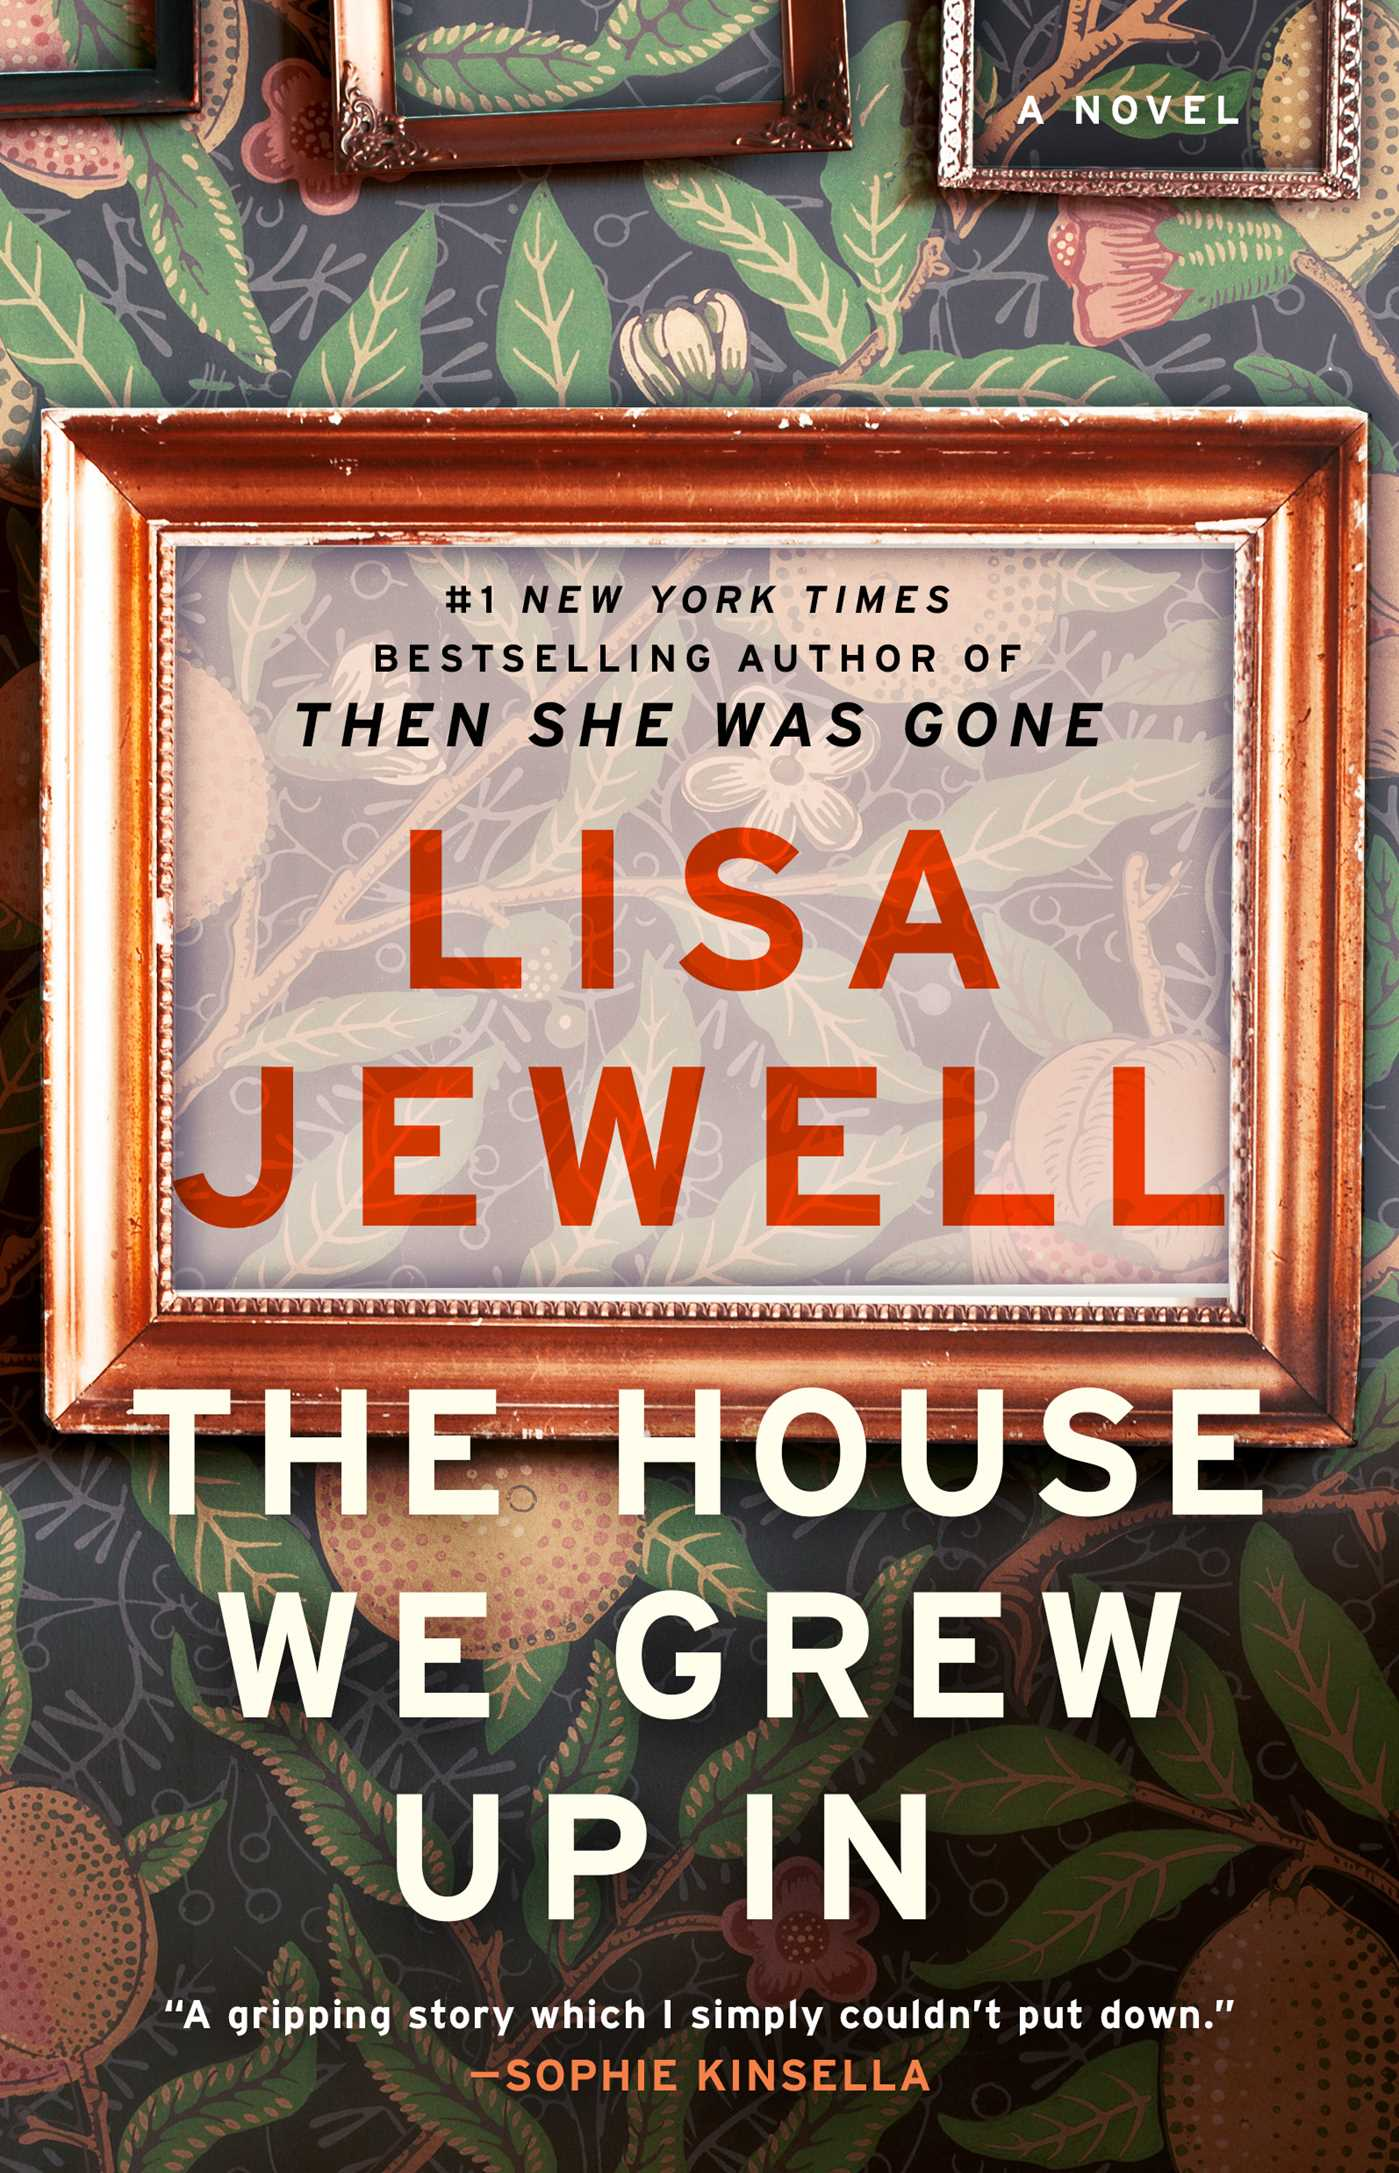 The-house-we-grew-up-in-9781476703015_hr